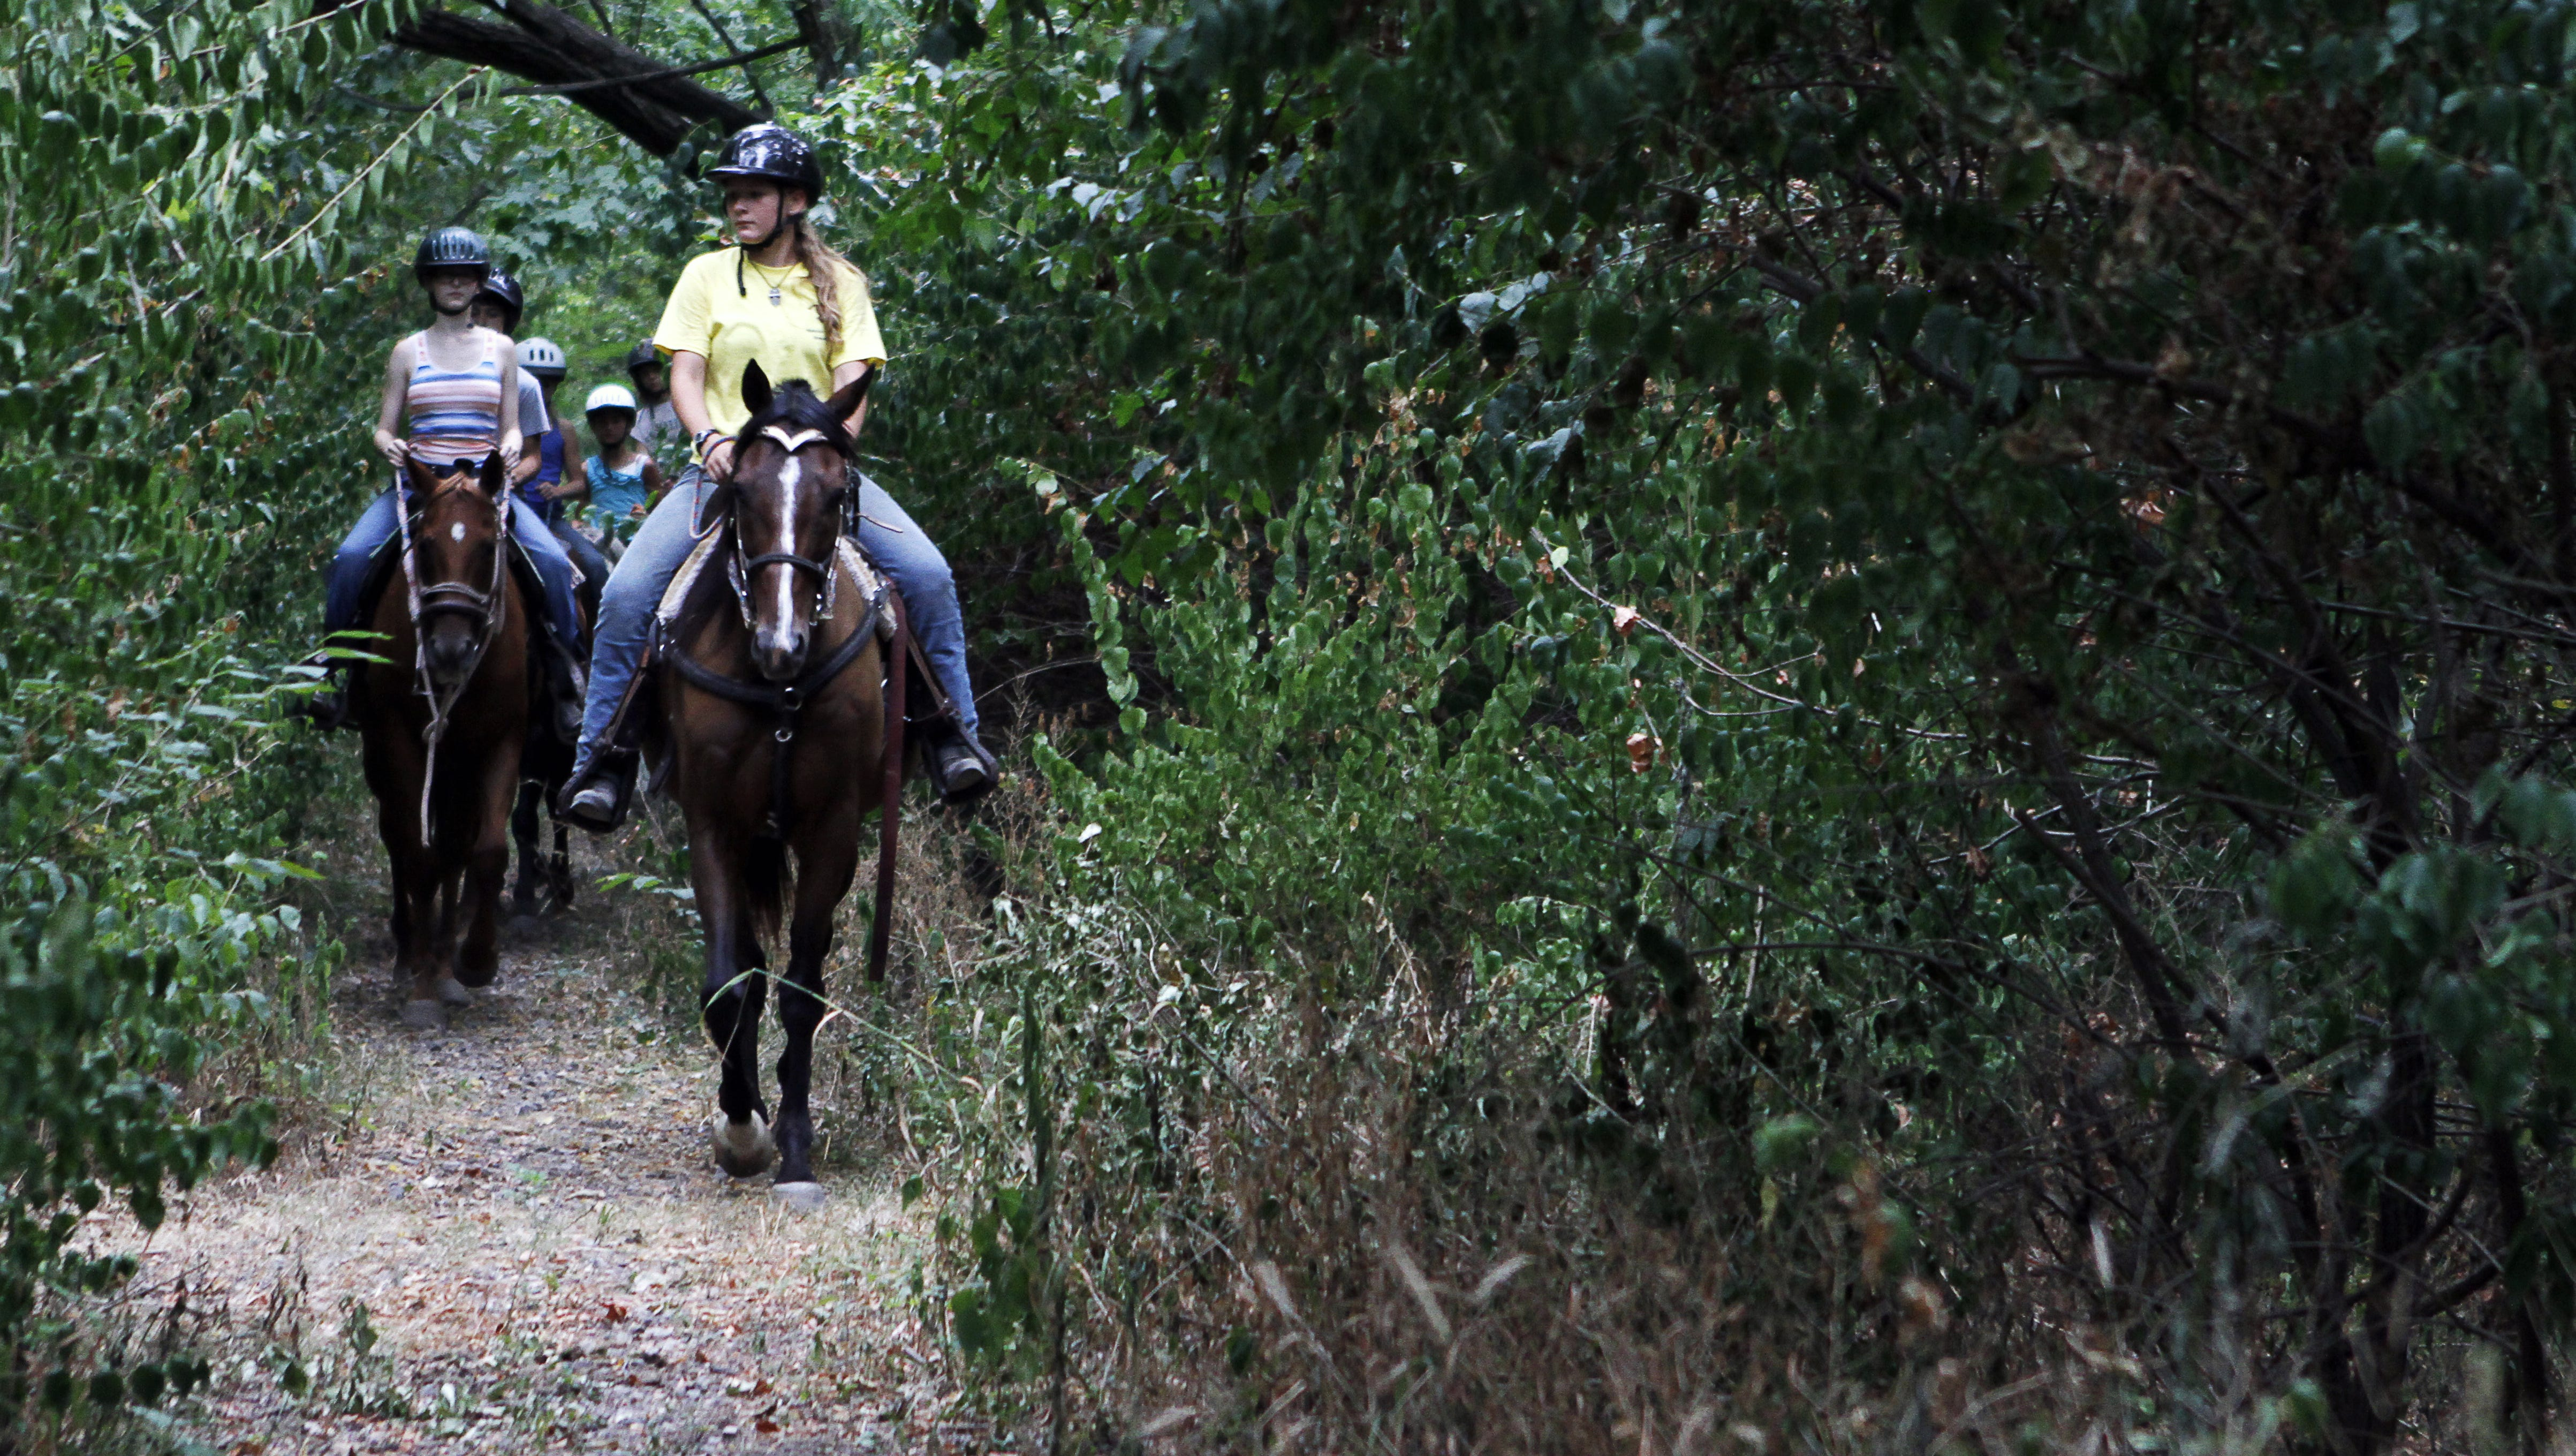 11 Best Places To Go Horseback Riding In Indiana